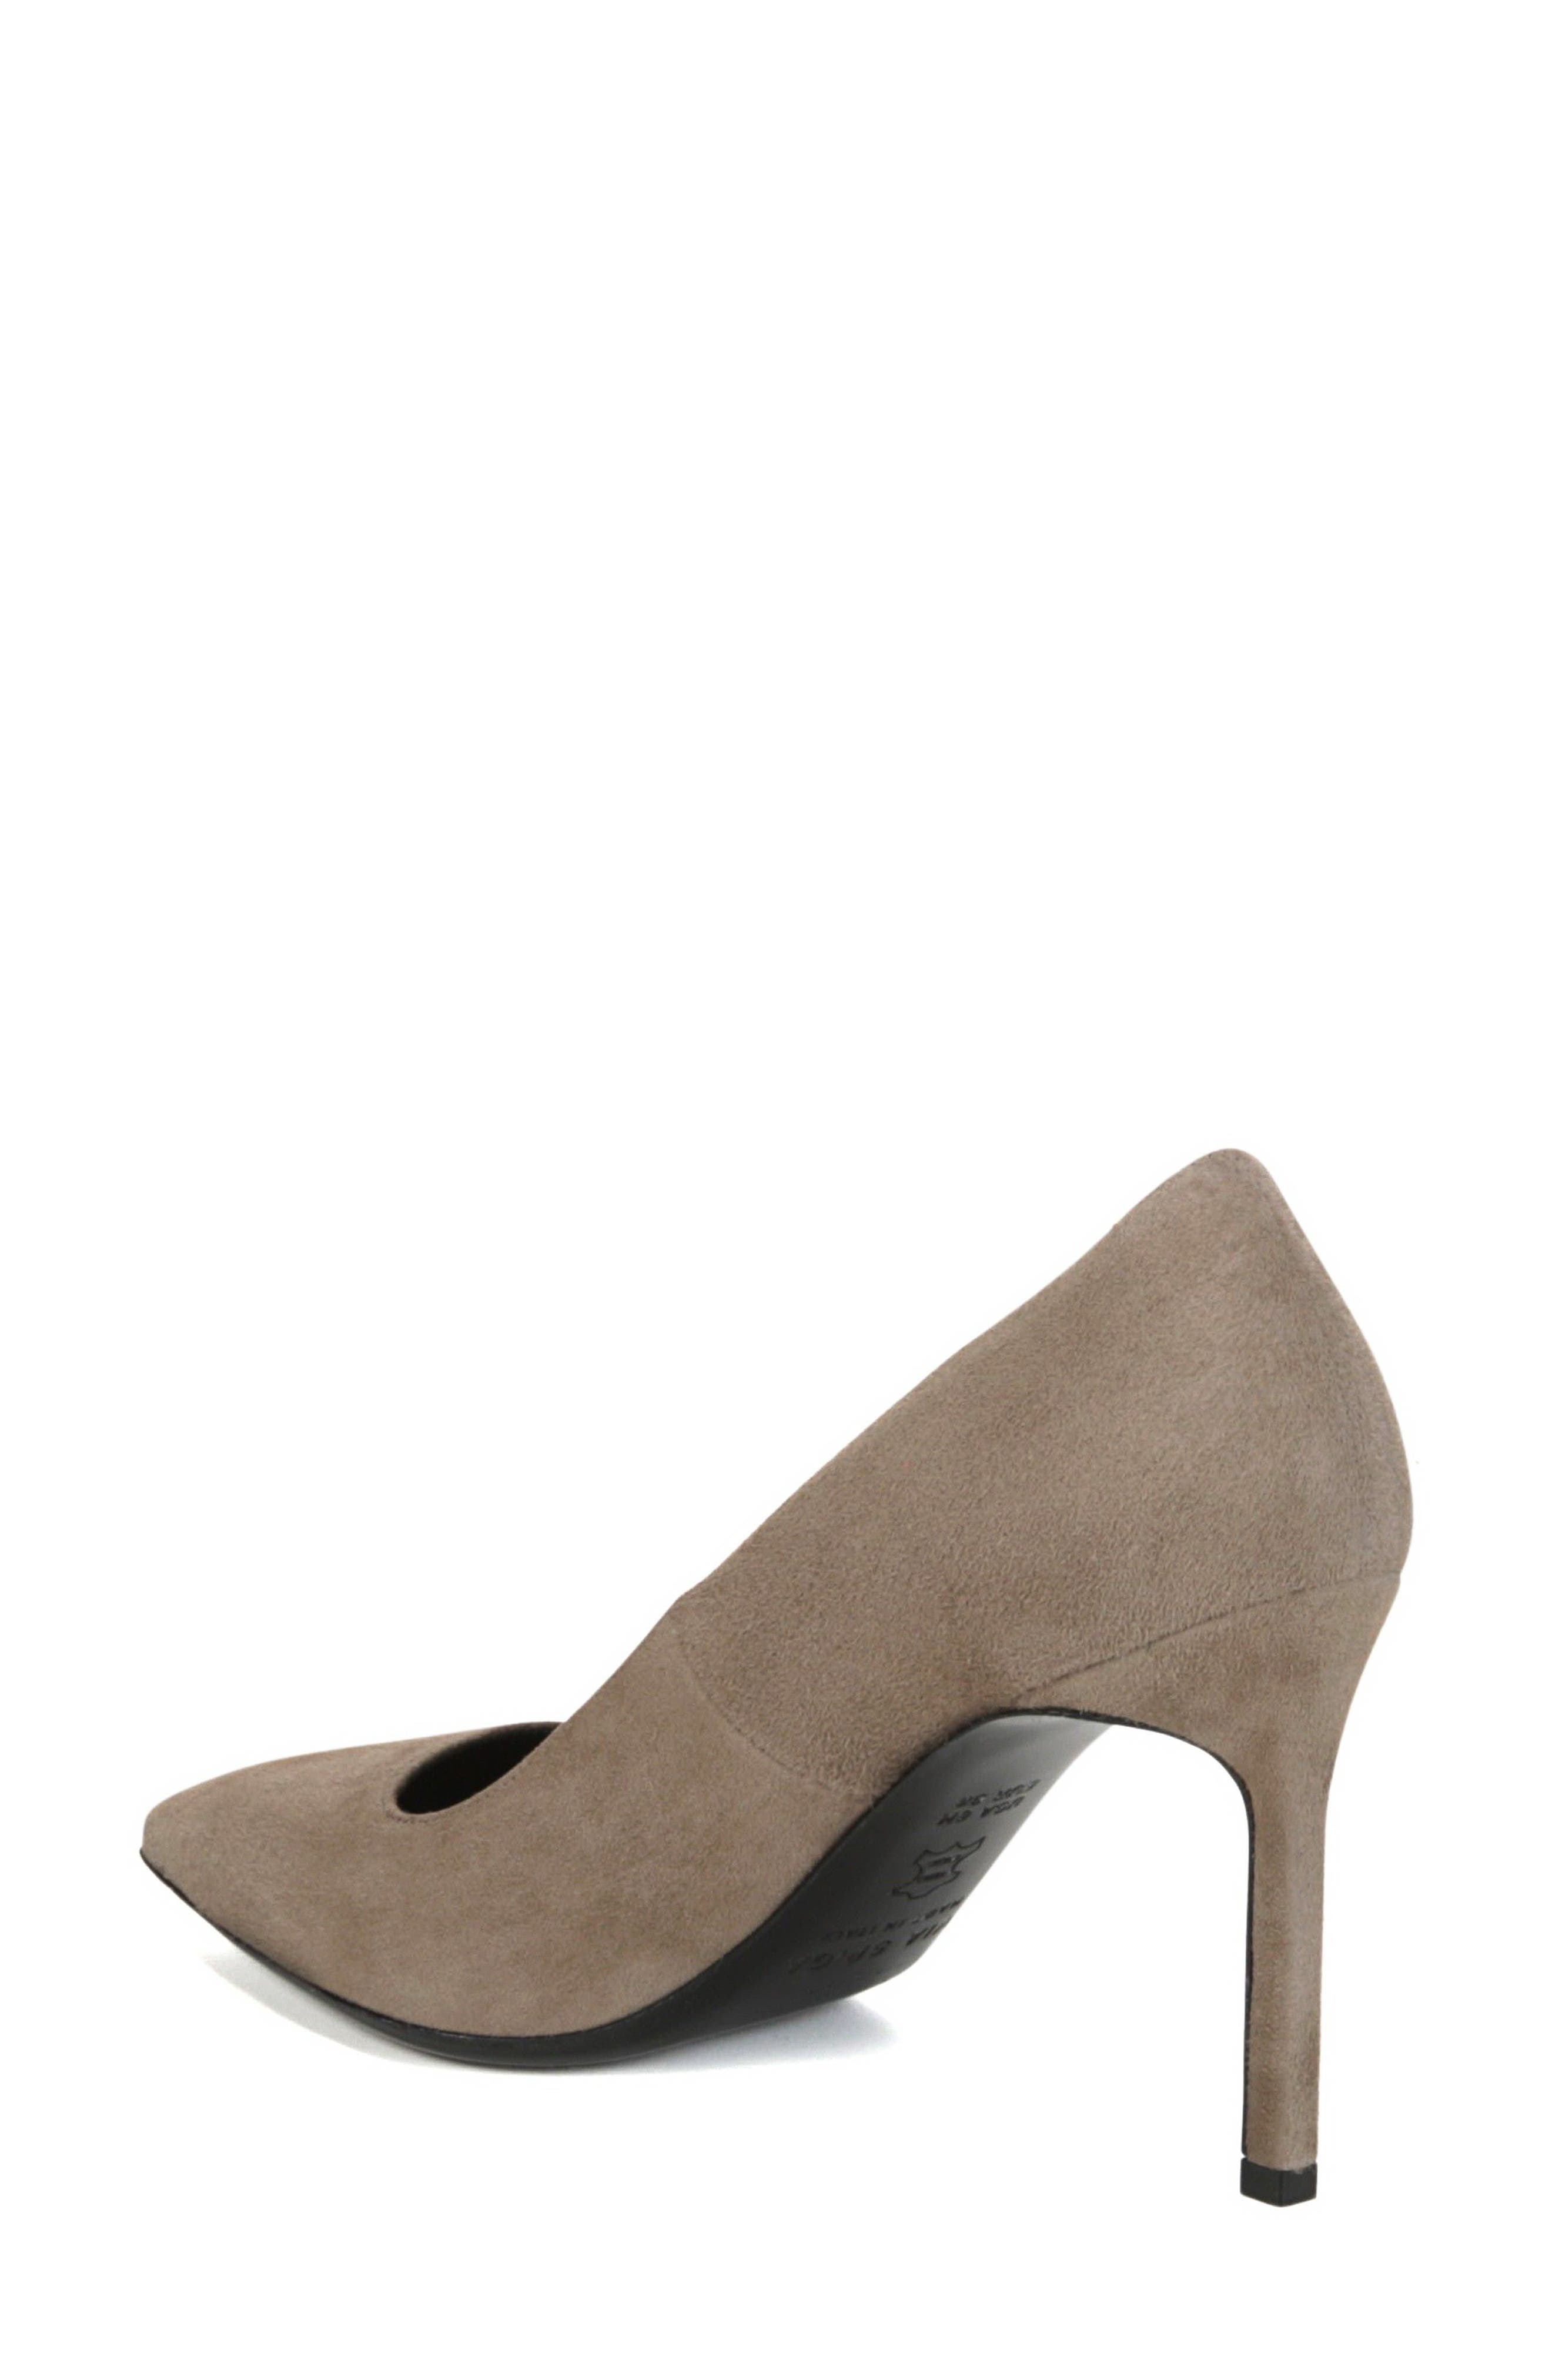 Nikole Pointy Toe Pump,                             Alternate thumbnail 2, color,                             Mink Suede